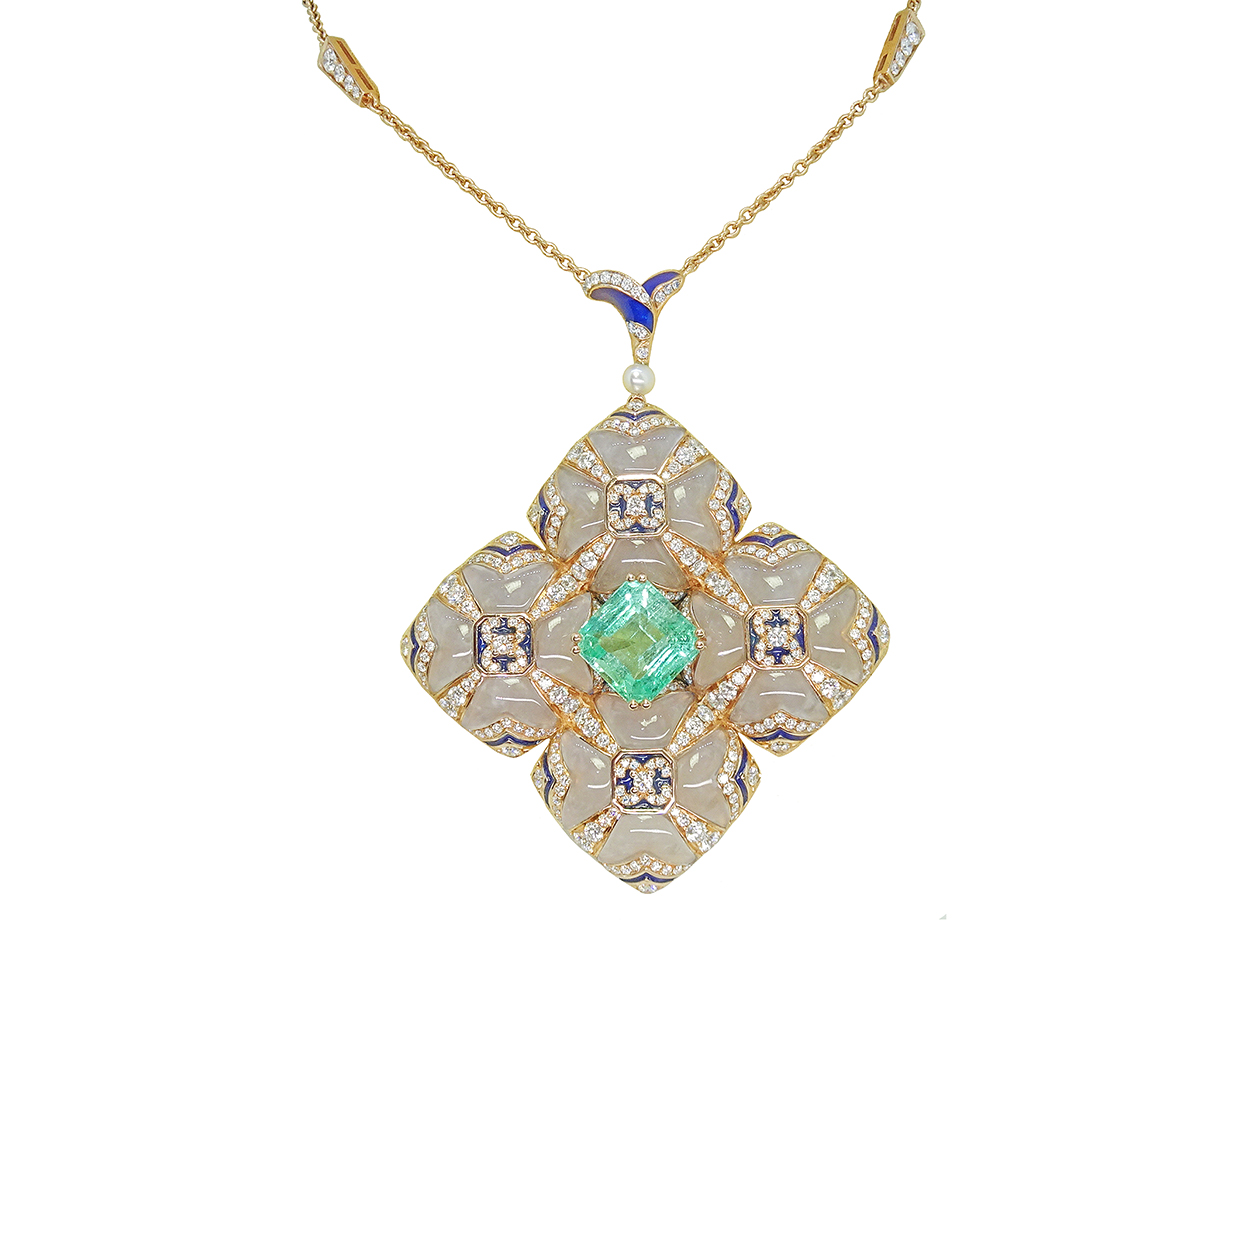 La Sagrada by Simone in 18K Rose Gold with Emerald, Chalcedon, Diamonds, Pearl and Blue Enamel ($34,745)